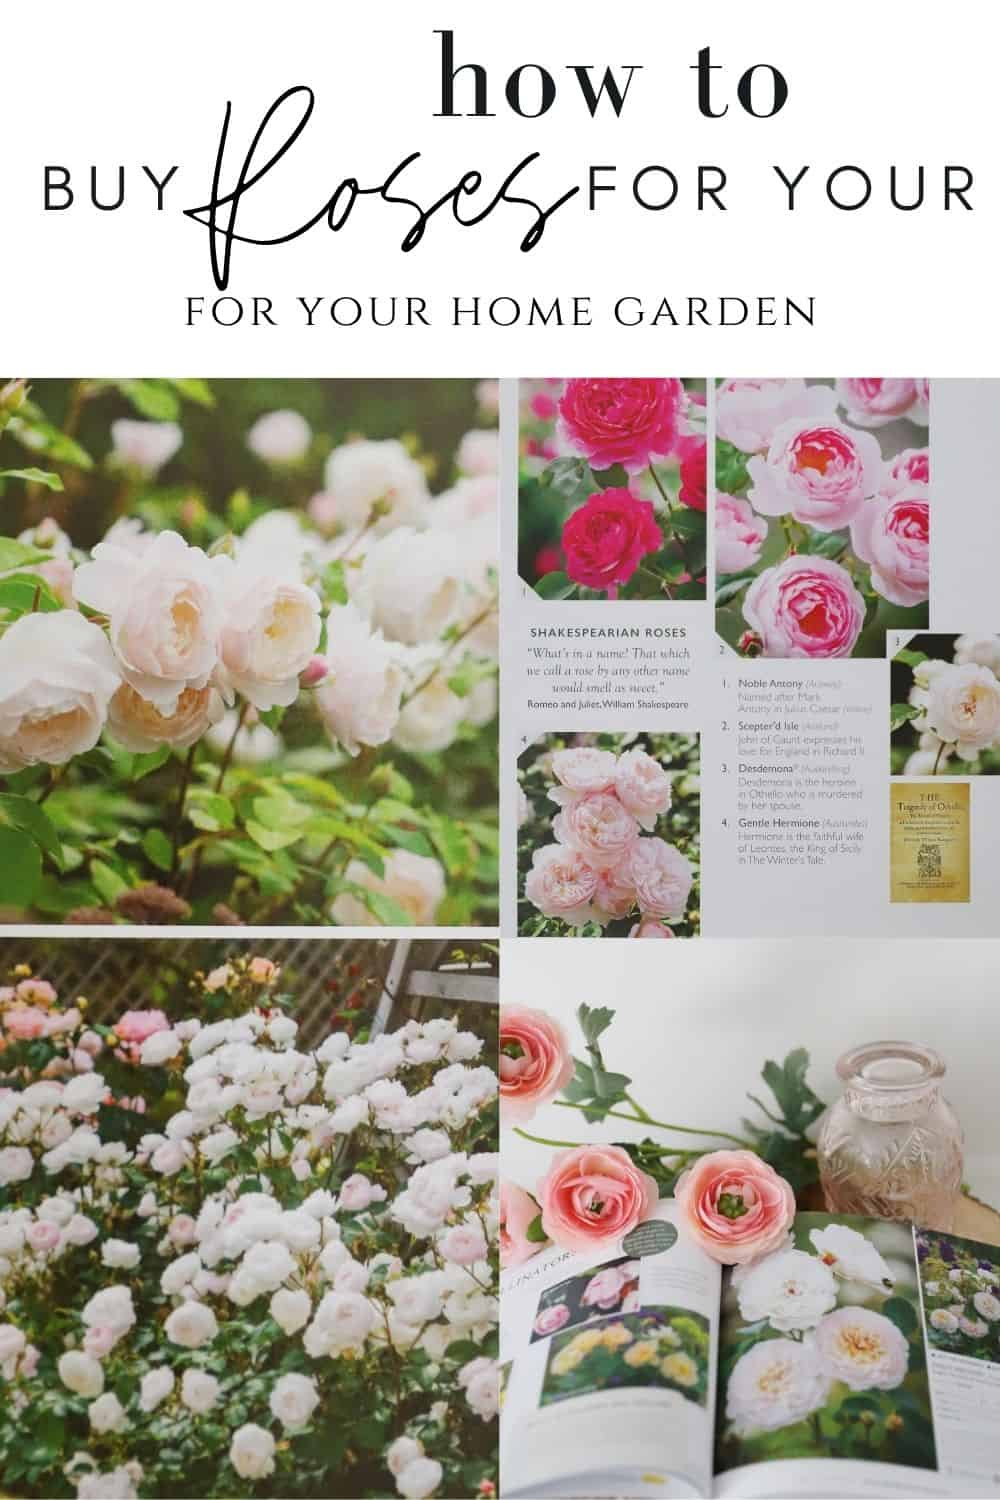 a guide for how to buy roses for your home garden